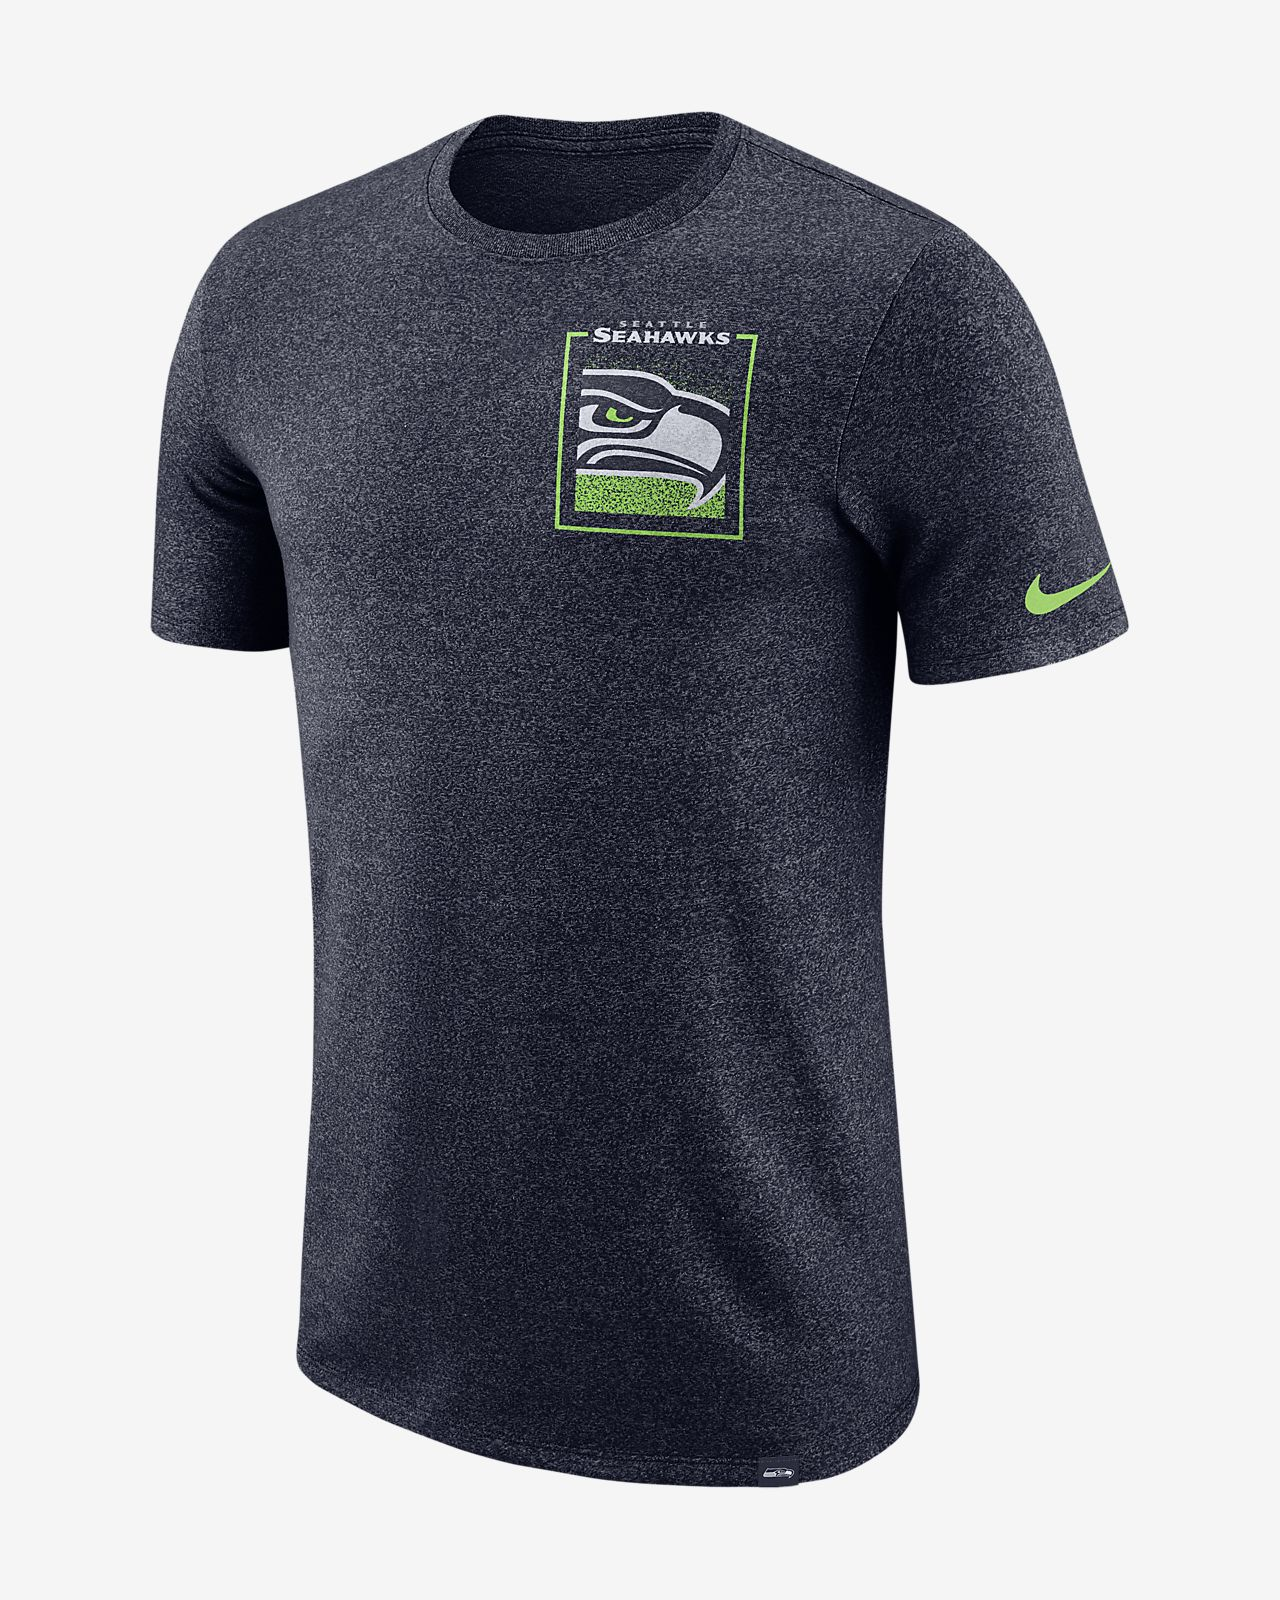 Nike (NFL Seahawks) Men's T-Shirt